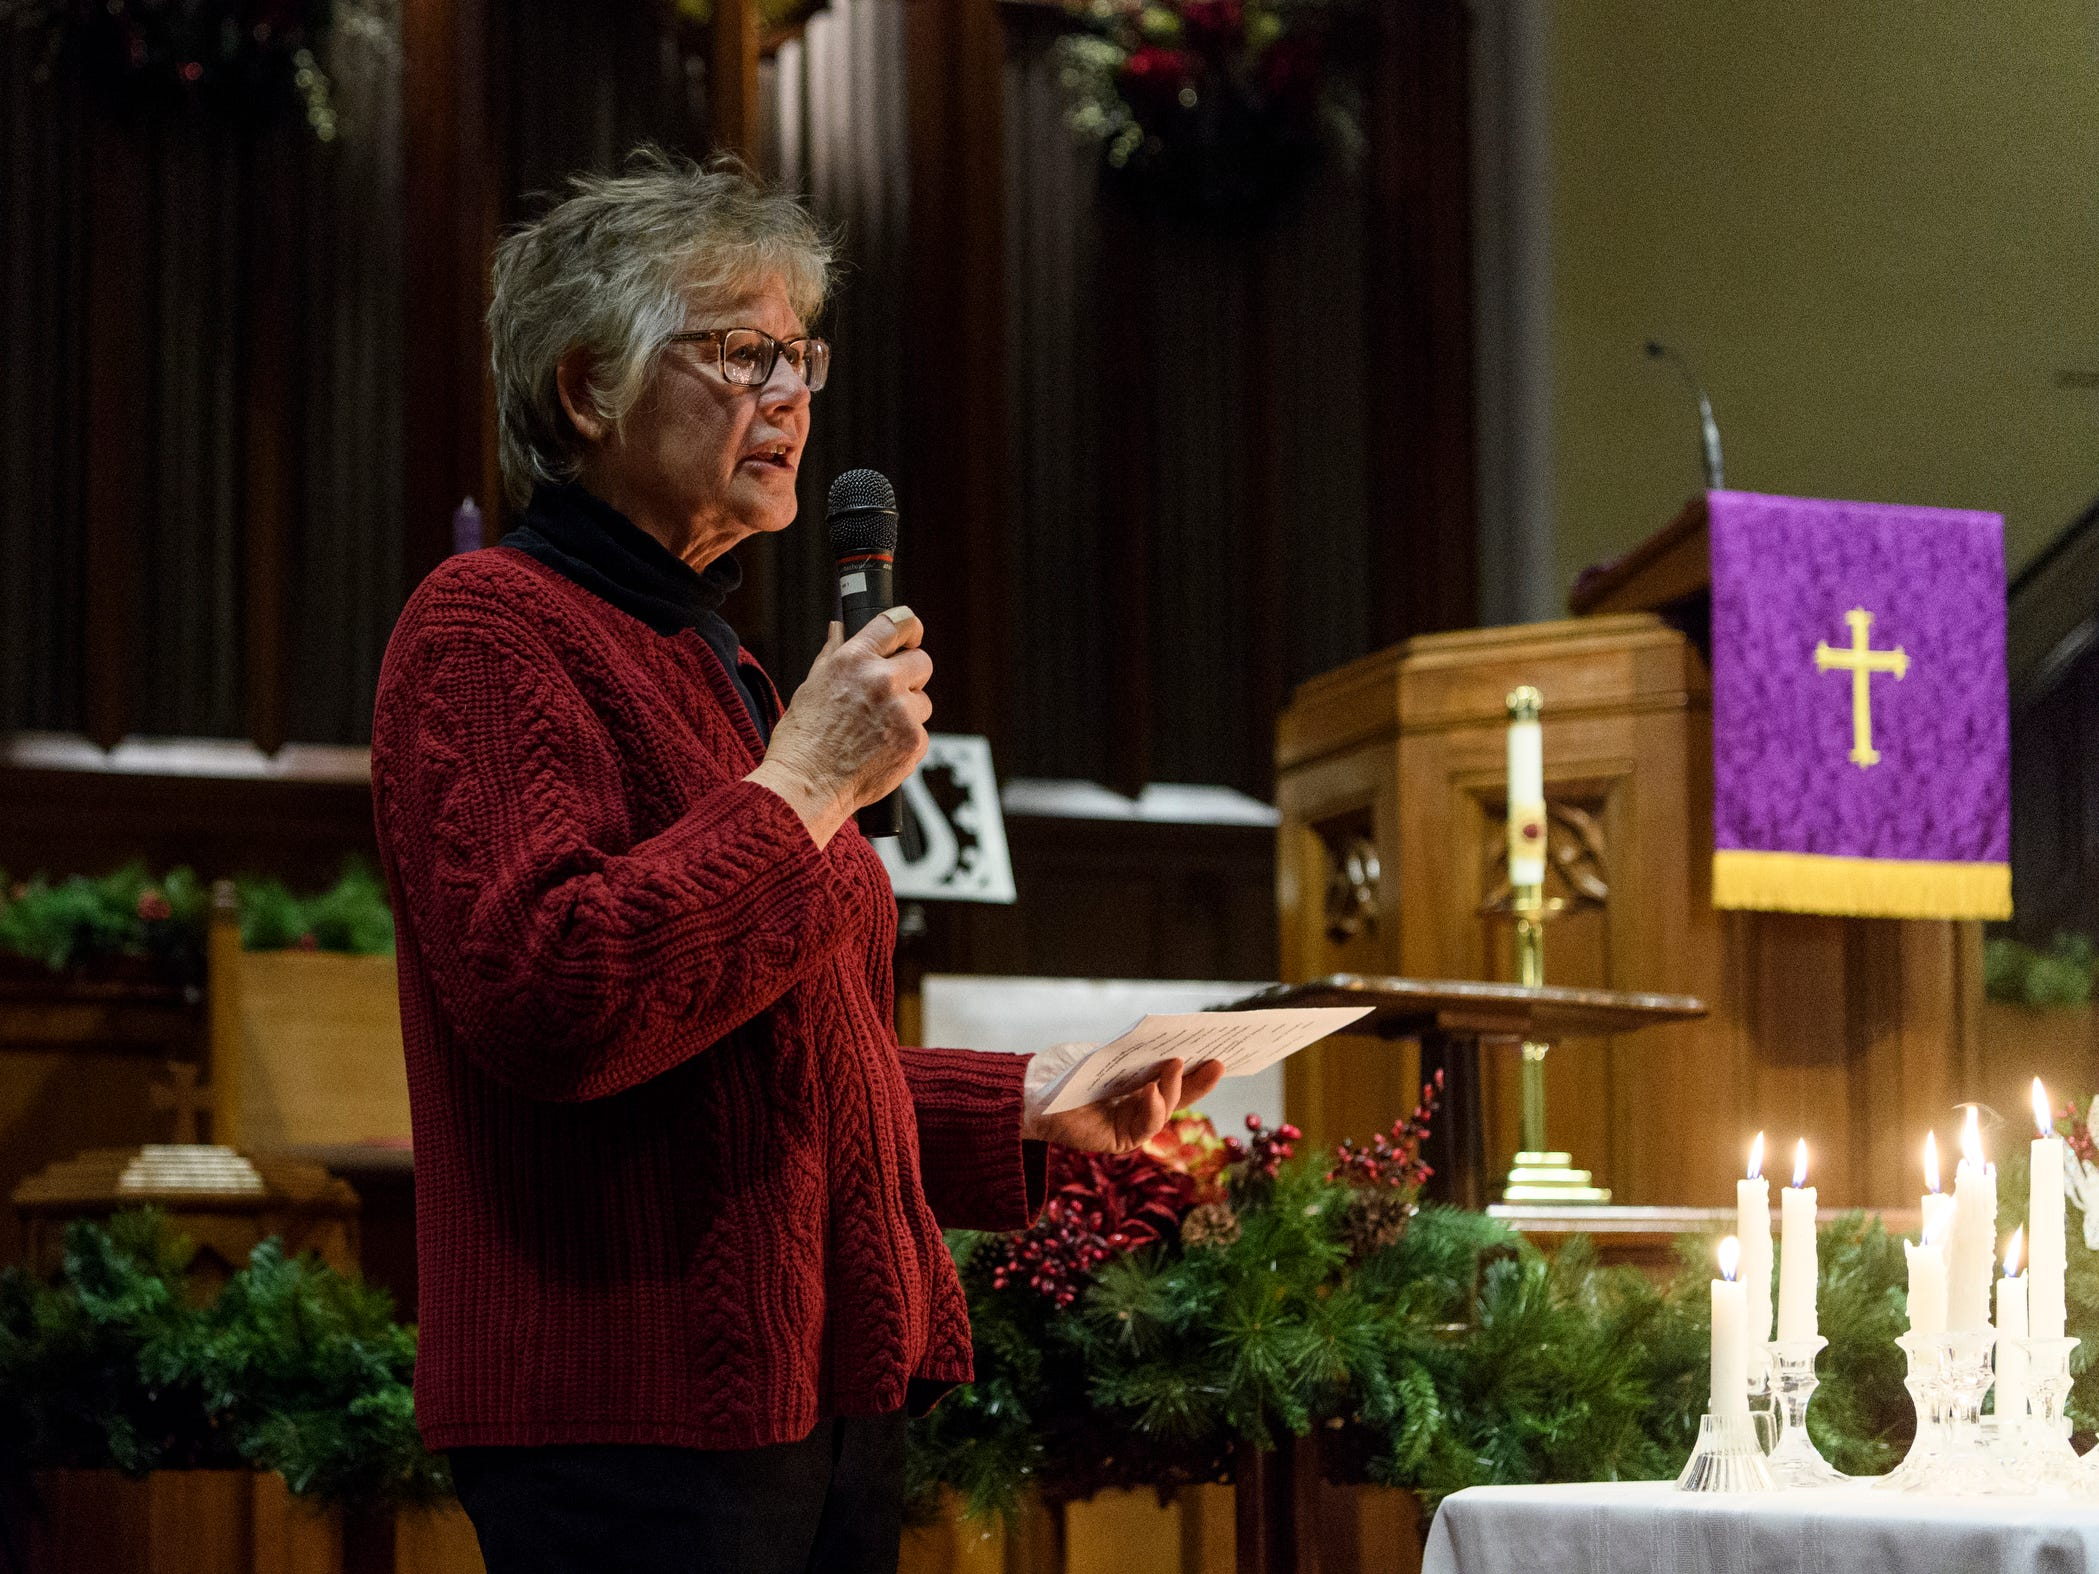 Susan Steinkamp, the program director of Aurora Evansville, addresses the crowd during the 18th annual Homeless Memorial service organized by the non-profit, which serves the area's homeless population, at Trinity United Methodist Church in Evansville, Ind., Tuesday, Dec. 11, 2018.